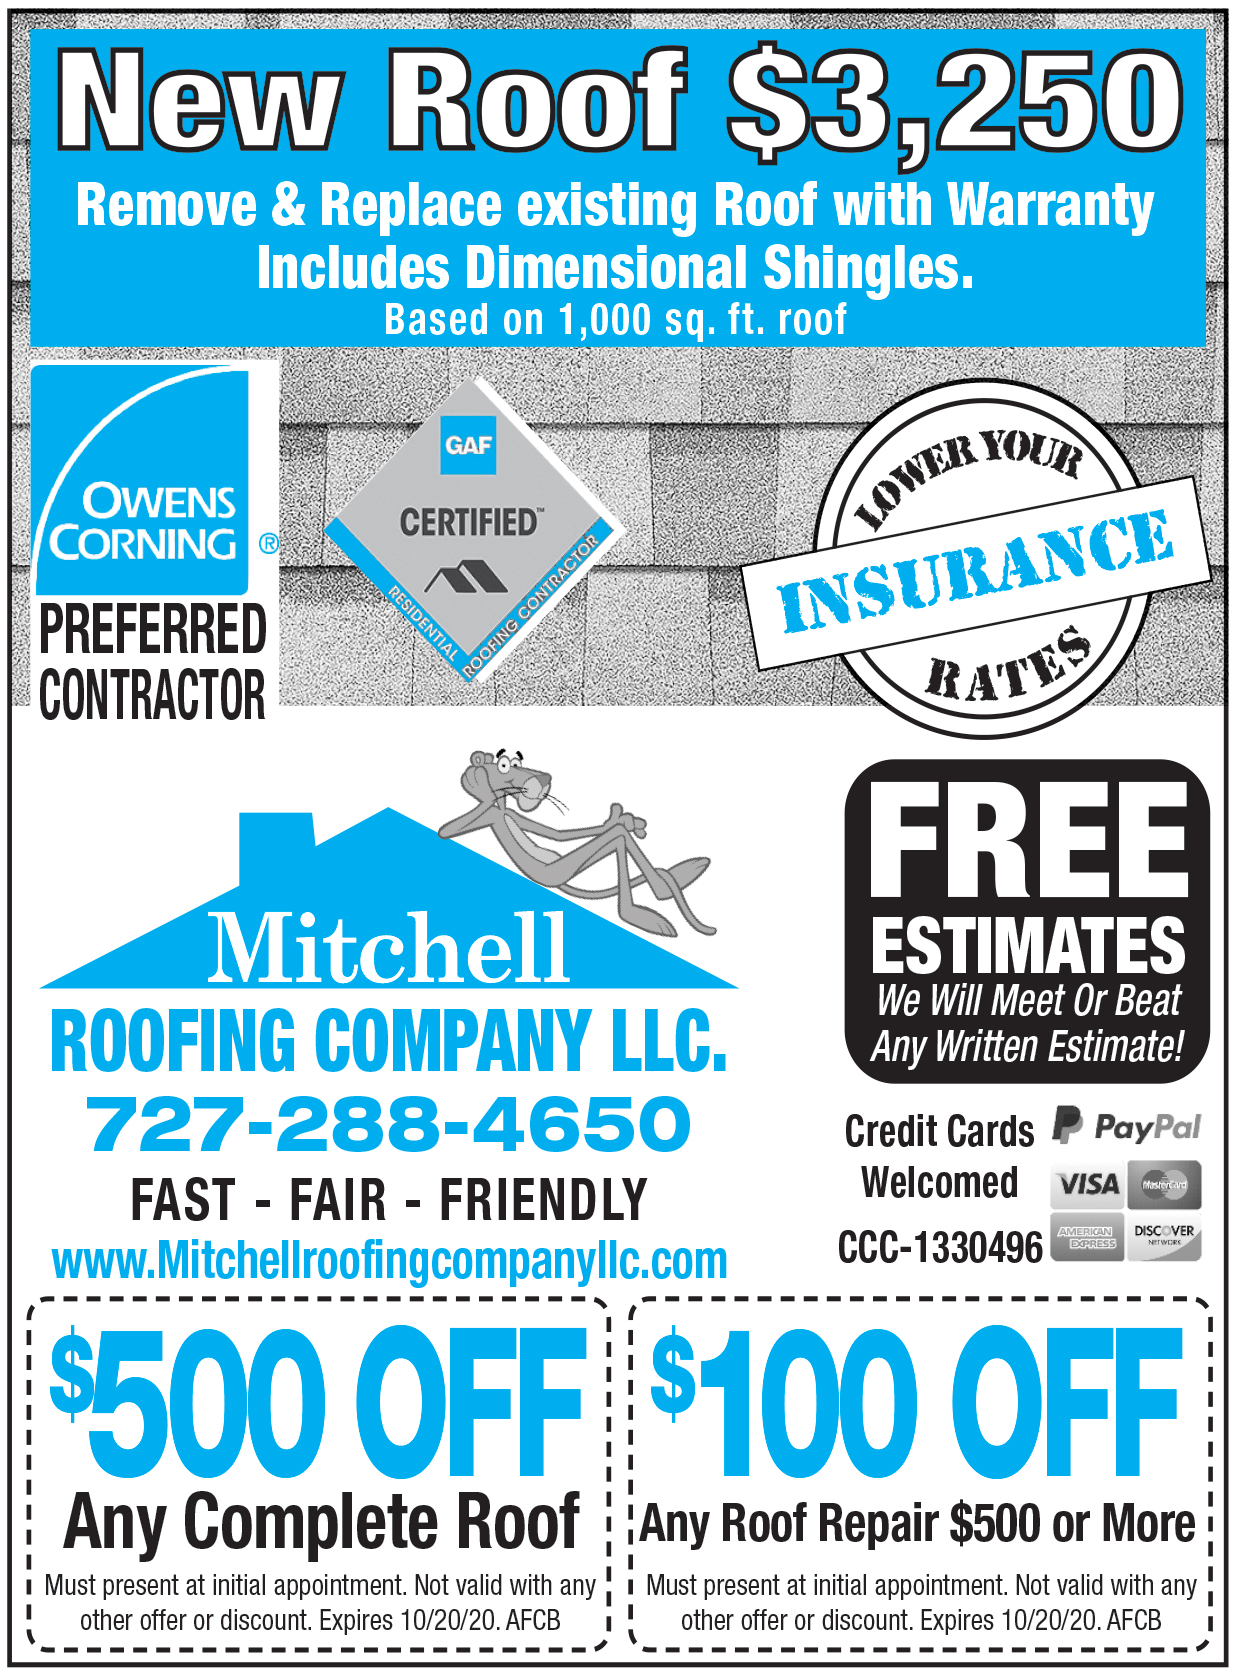 Mitchell-Roofing